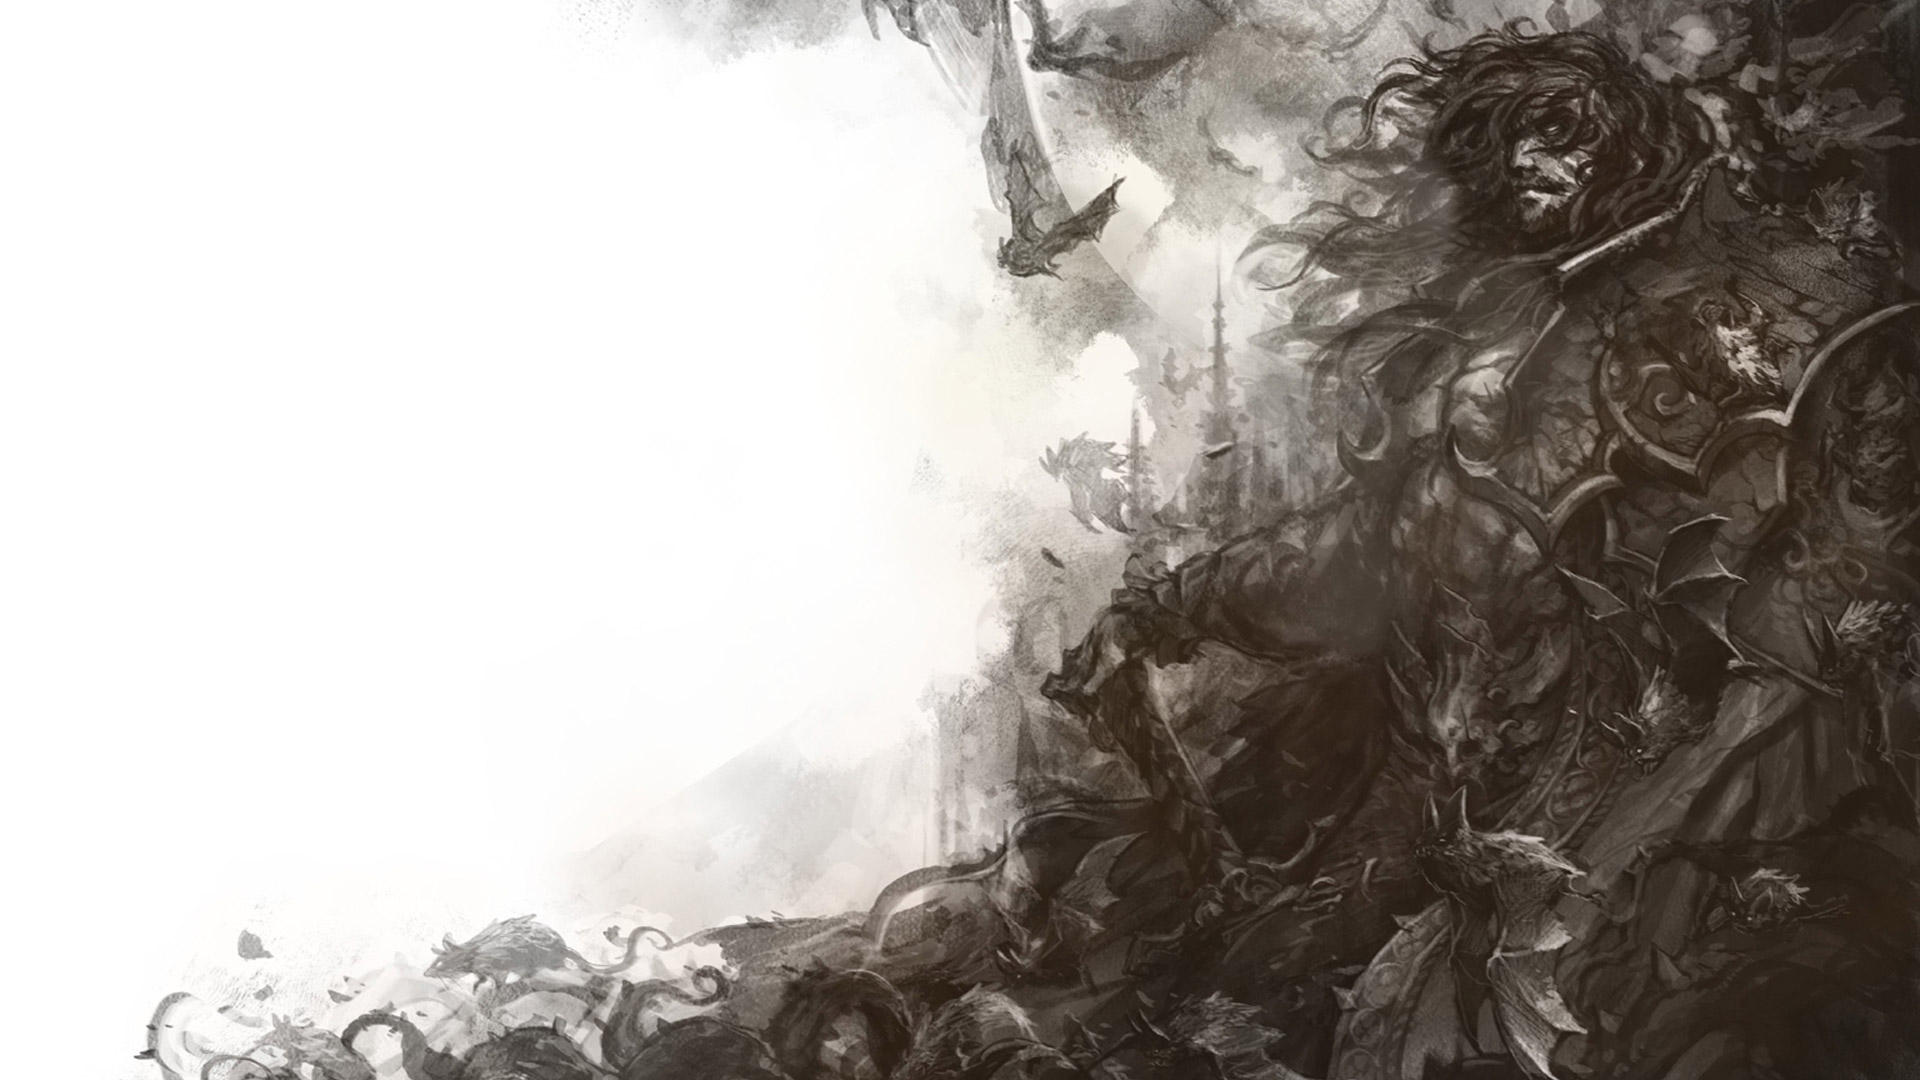 Castlevania Lords of Shadow 2 wallpaper 5